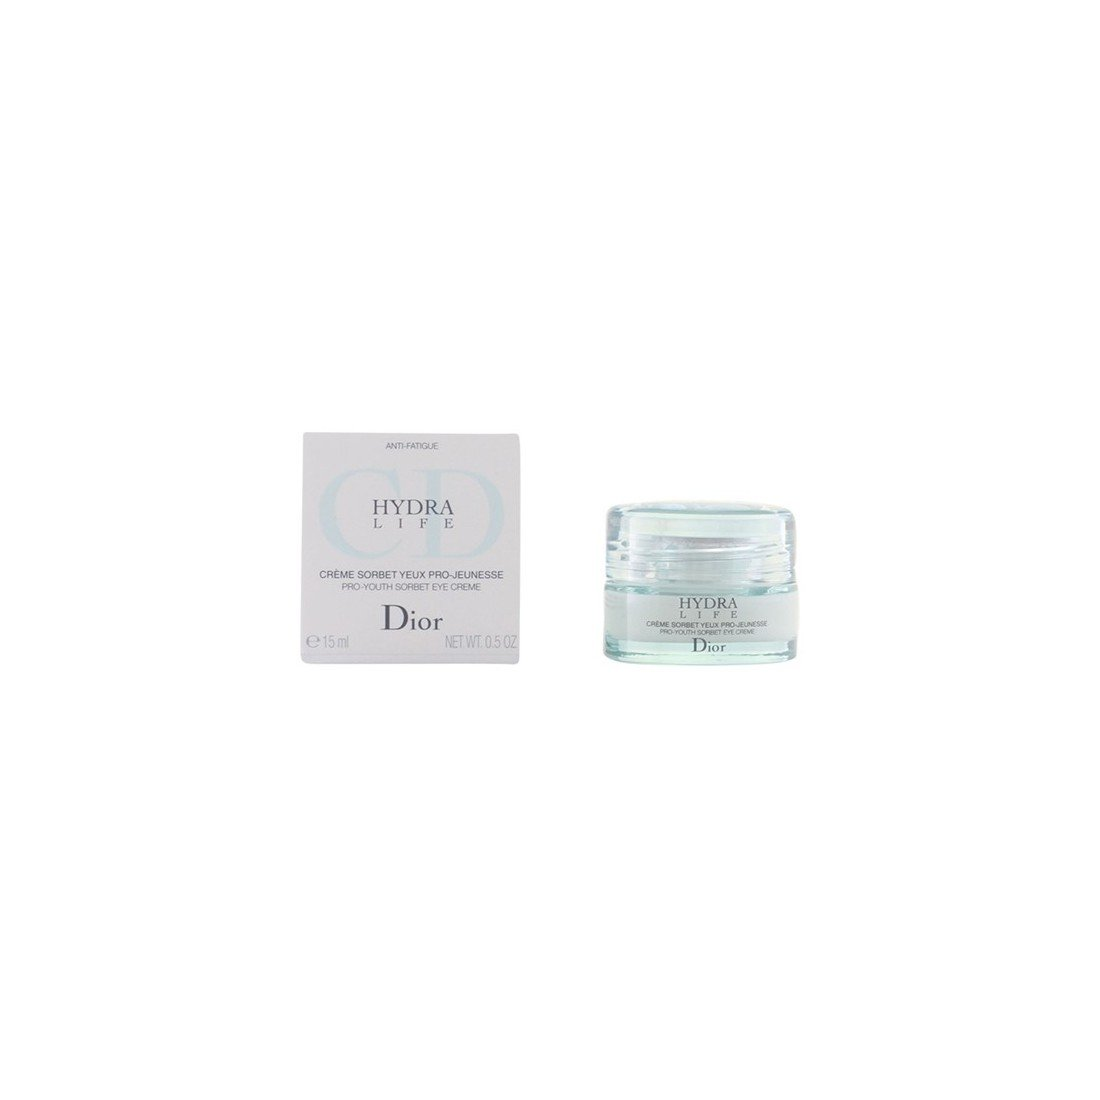 Hydra Life Pro-Youth Sorbet Eye Creme by Christian Dior, 0.5 Ounce